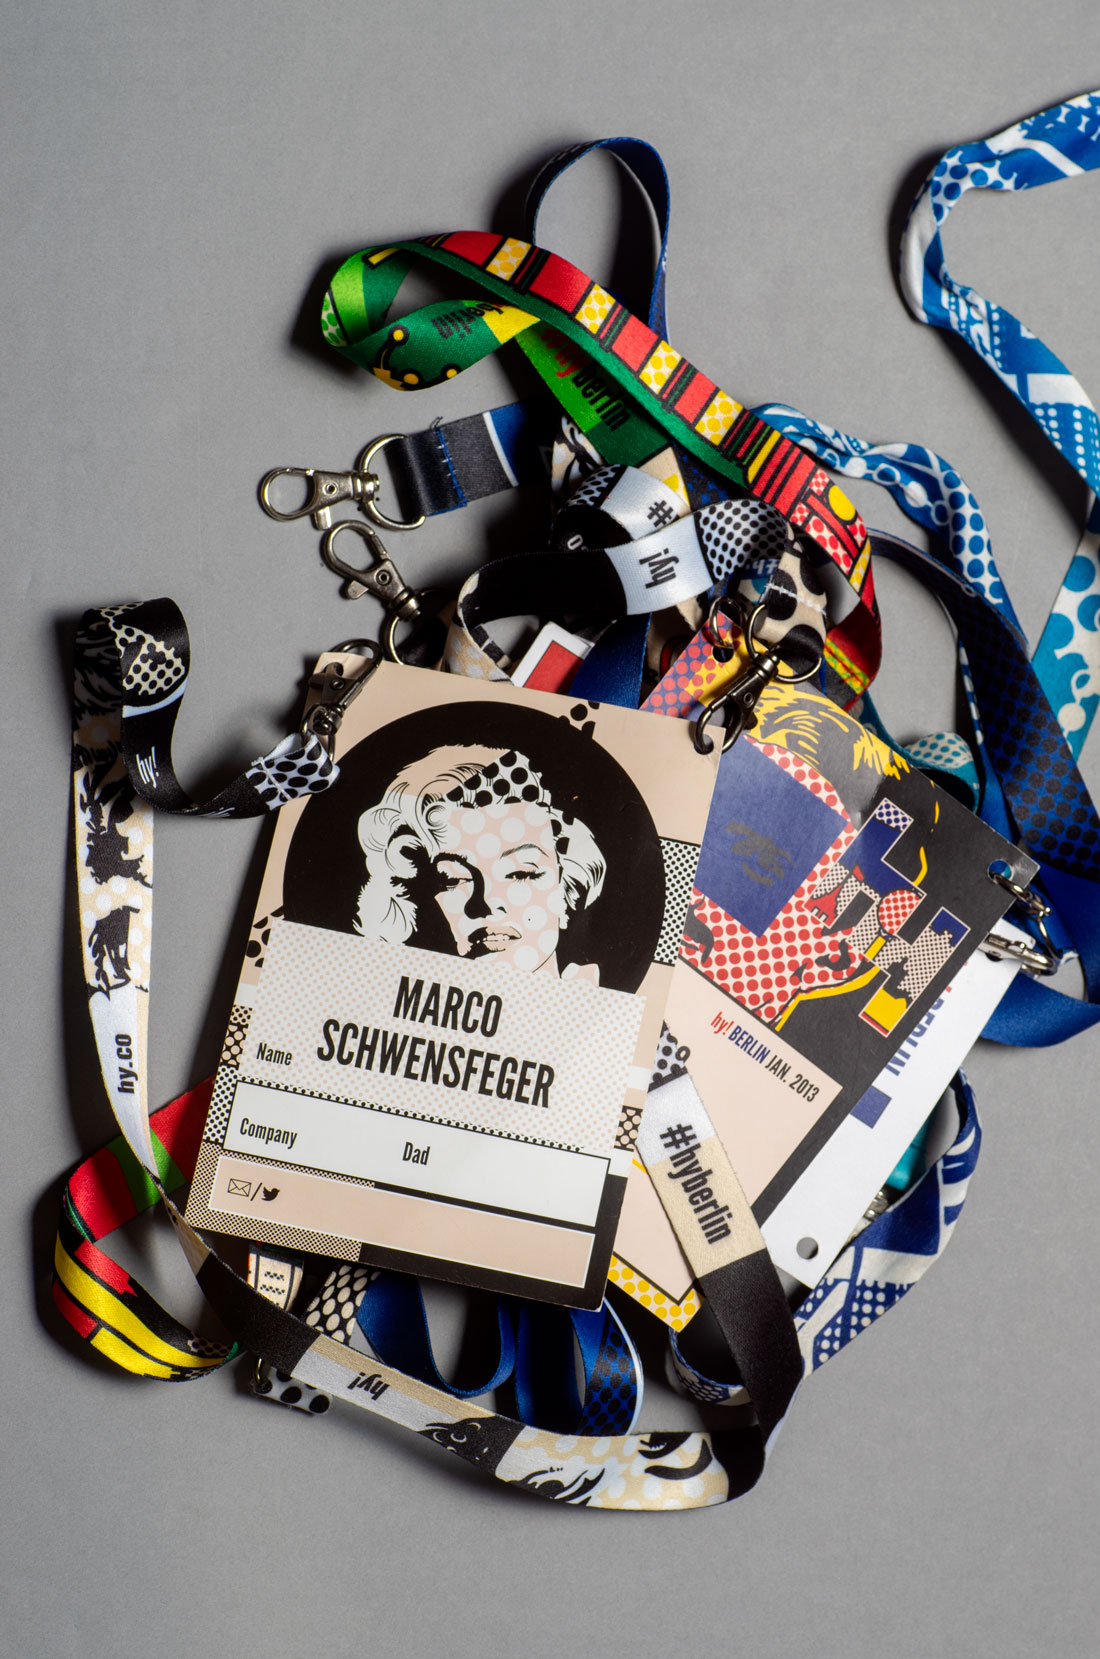 hy_all_nametags_lanyards@2x